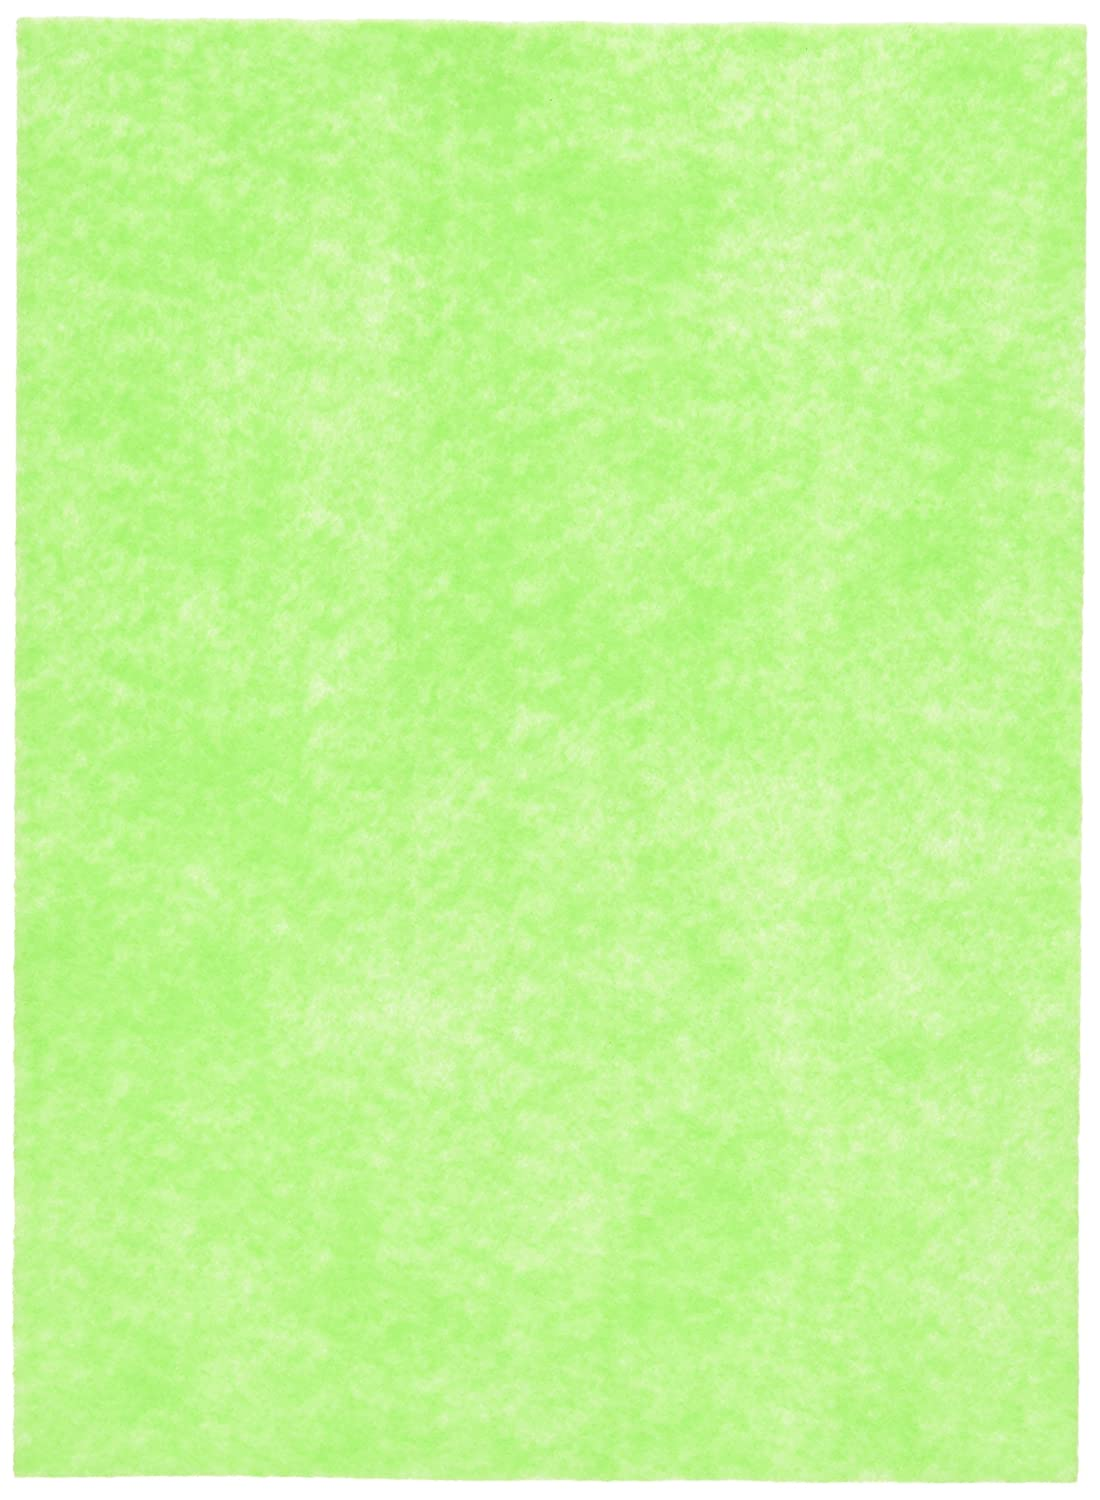 Rainbow Classic Felt 9X12-Neon Green  24 per pack Notions In Network